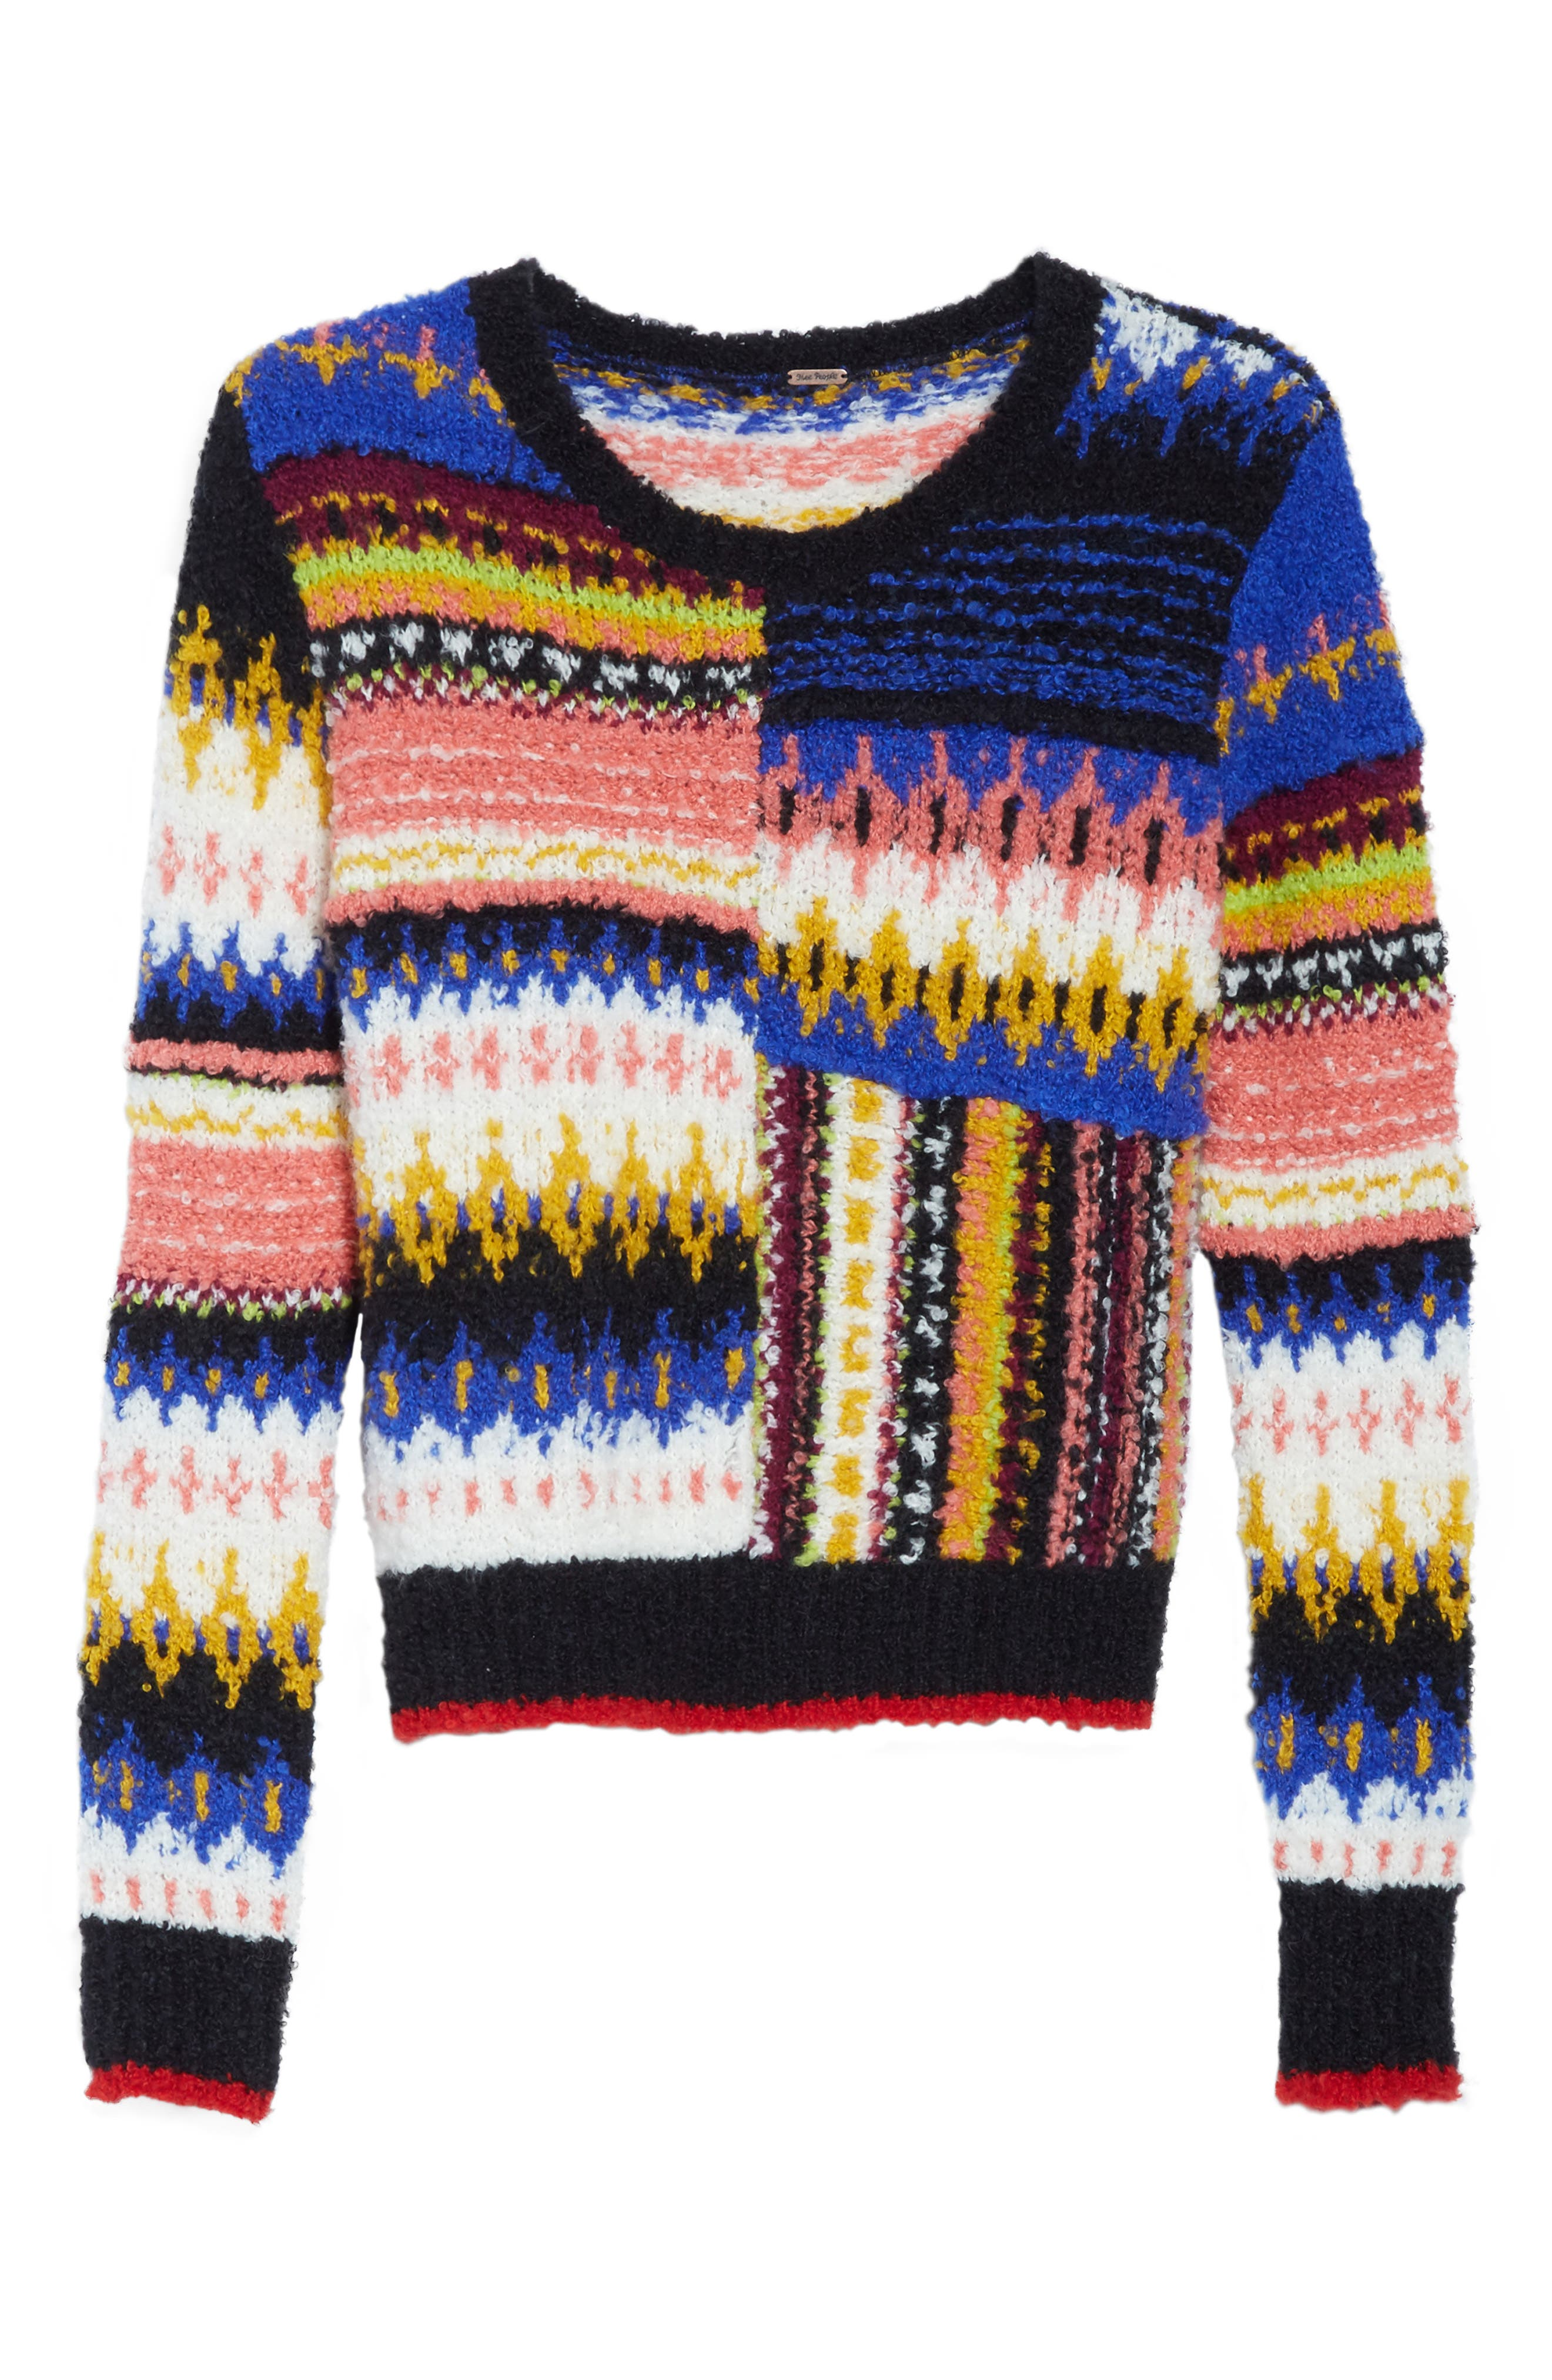 Best Day Ever Sweater,                             Alternate thumbnail 6, color,                             Multi